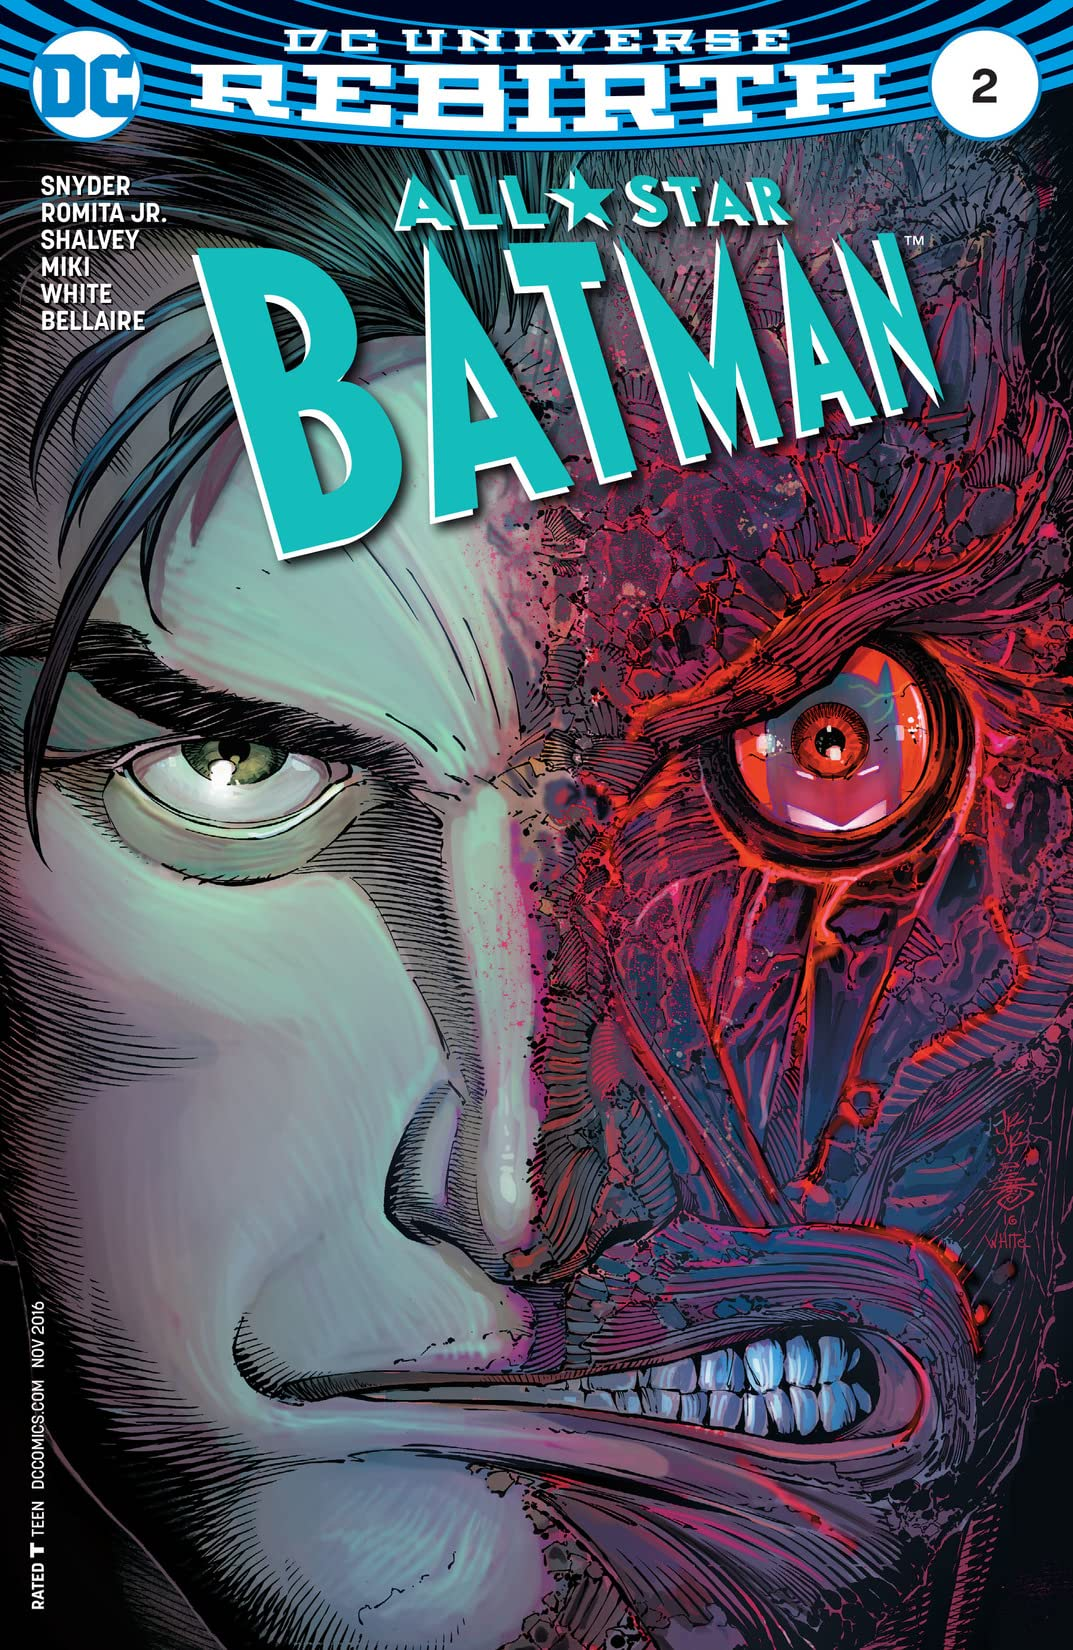 All-Star Batman (2016-2017) #2